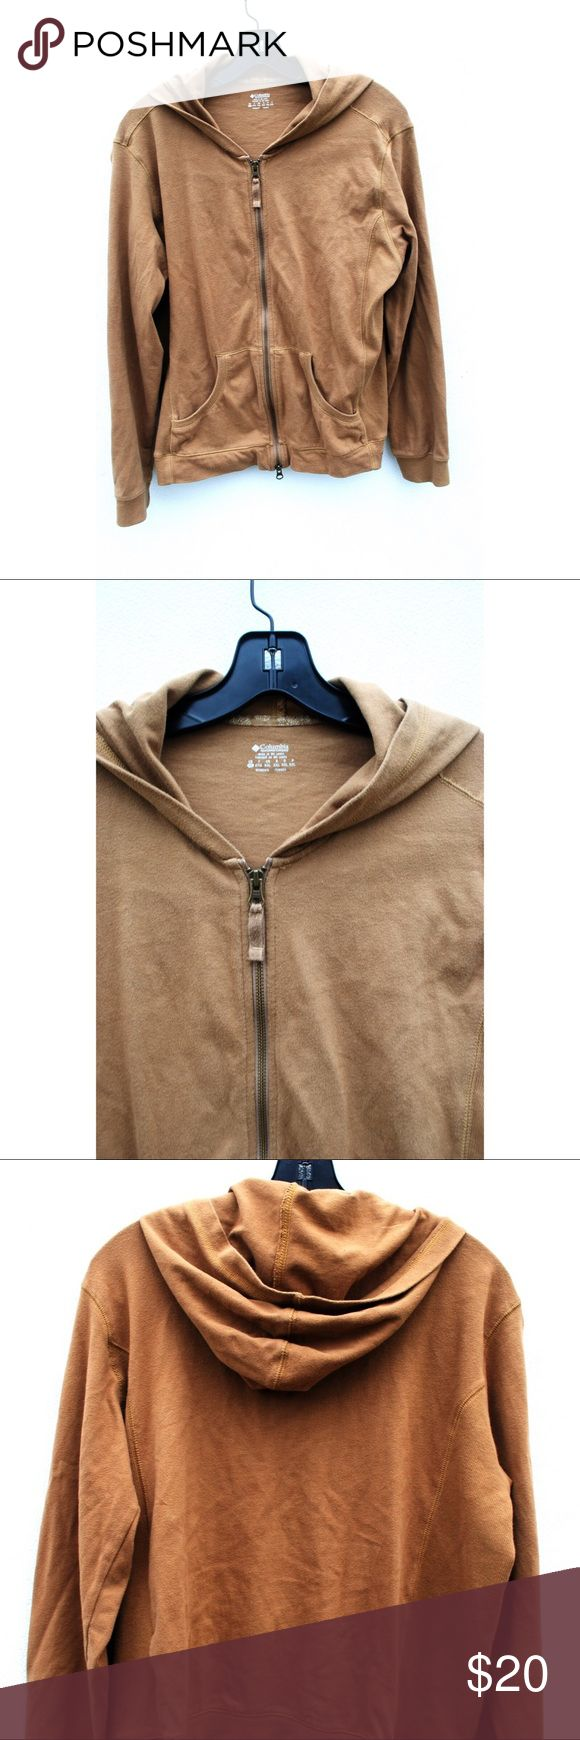 Columbia Brown zip up This Columbia brown zip up is in perfect condition coming in a size Extra Large. Columbia Jackets & Coats